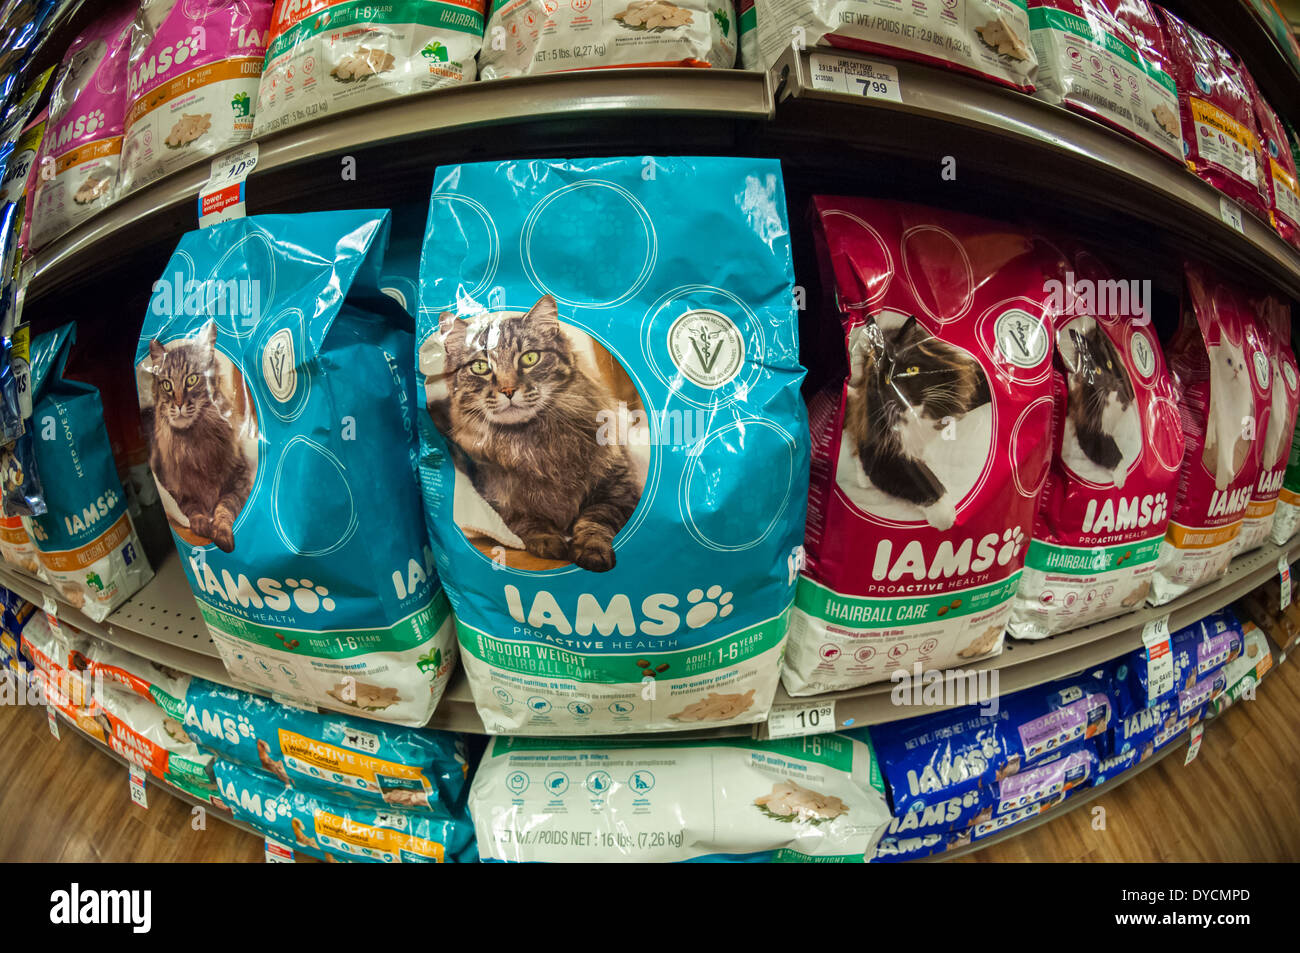 bags-of-iams-cat-food-on-a-pet-store-shelf-in-new-york-DYCMPD